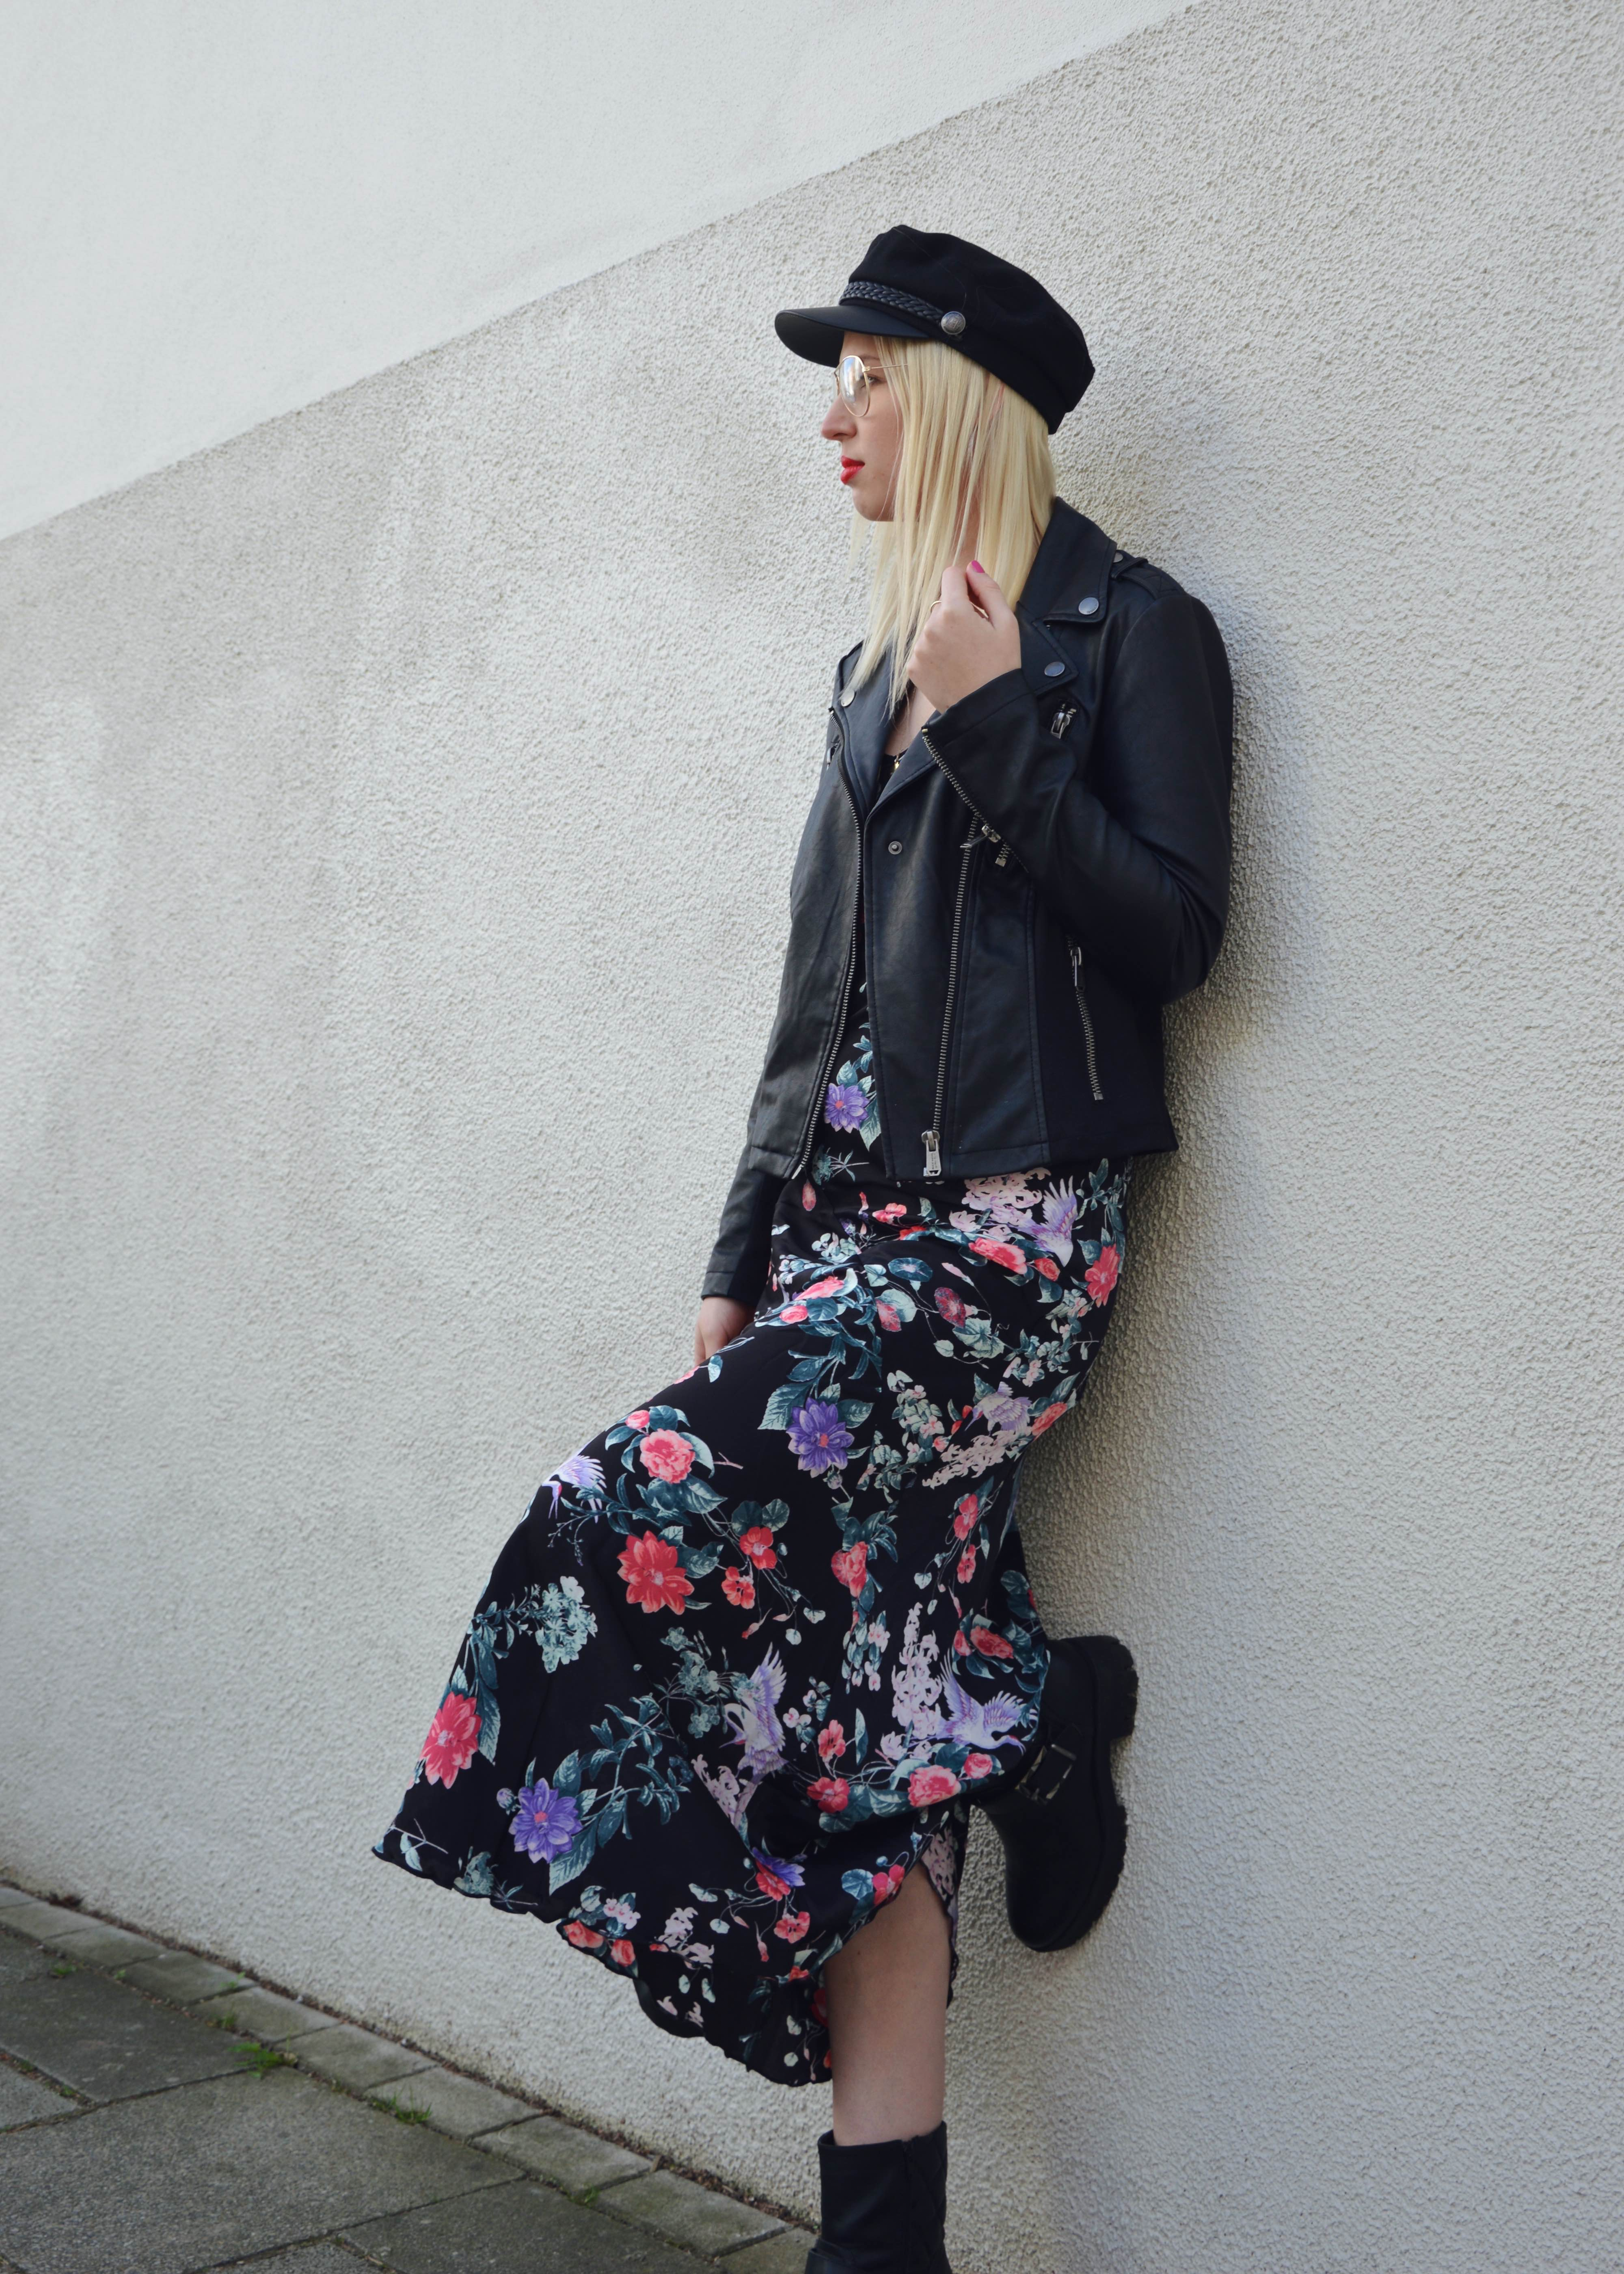 Flowerdress and Bikerjacket16